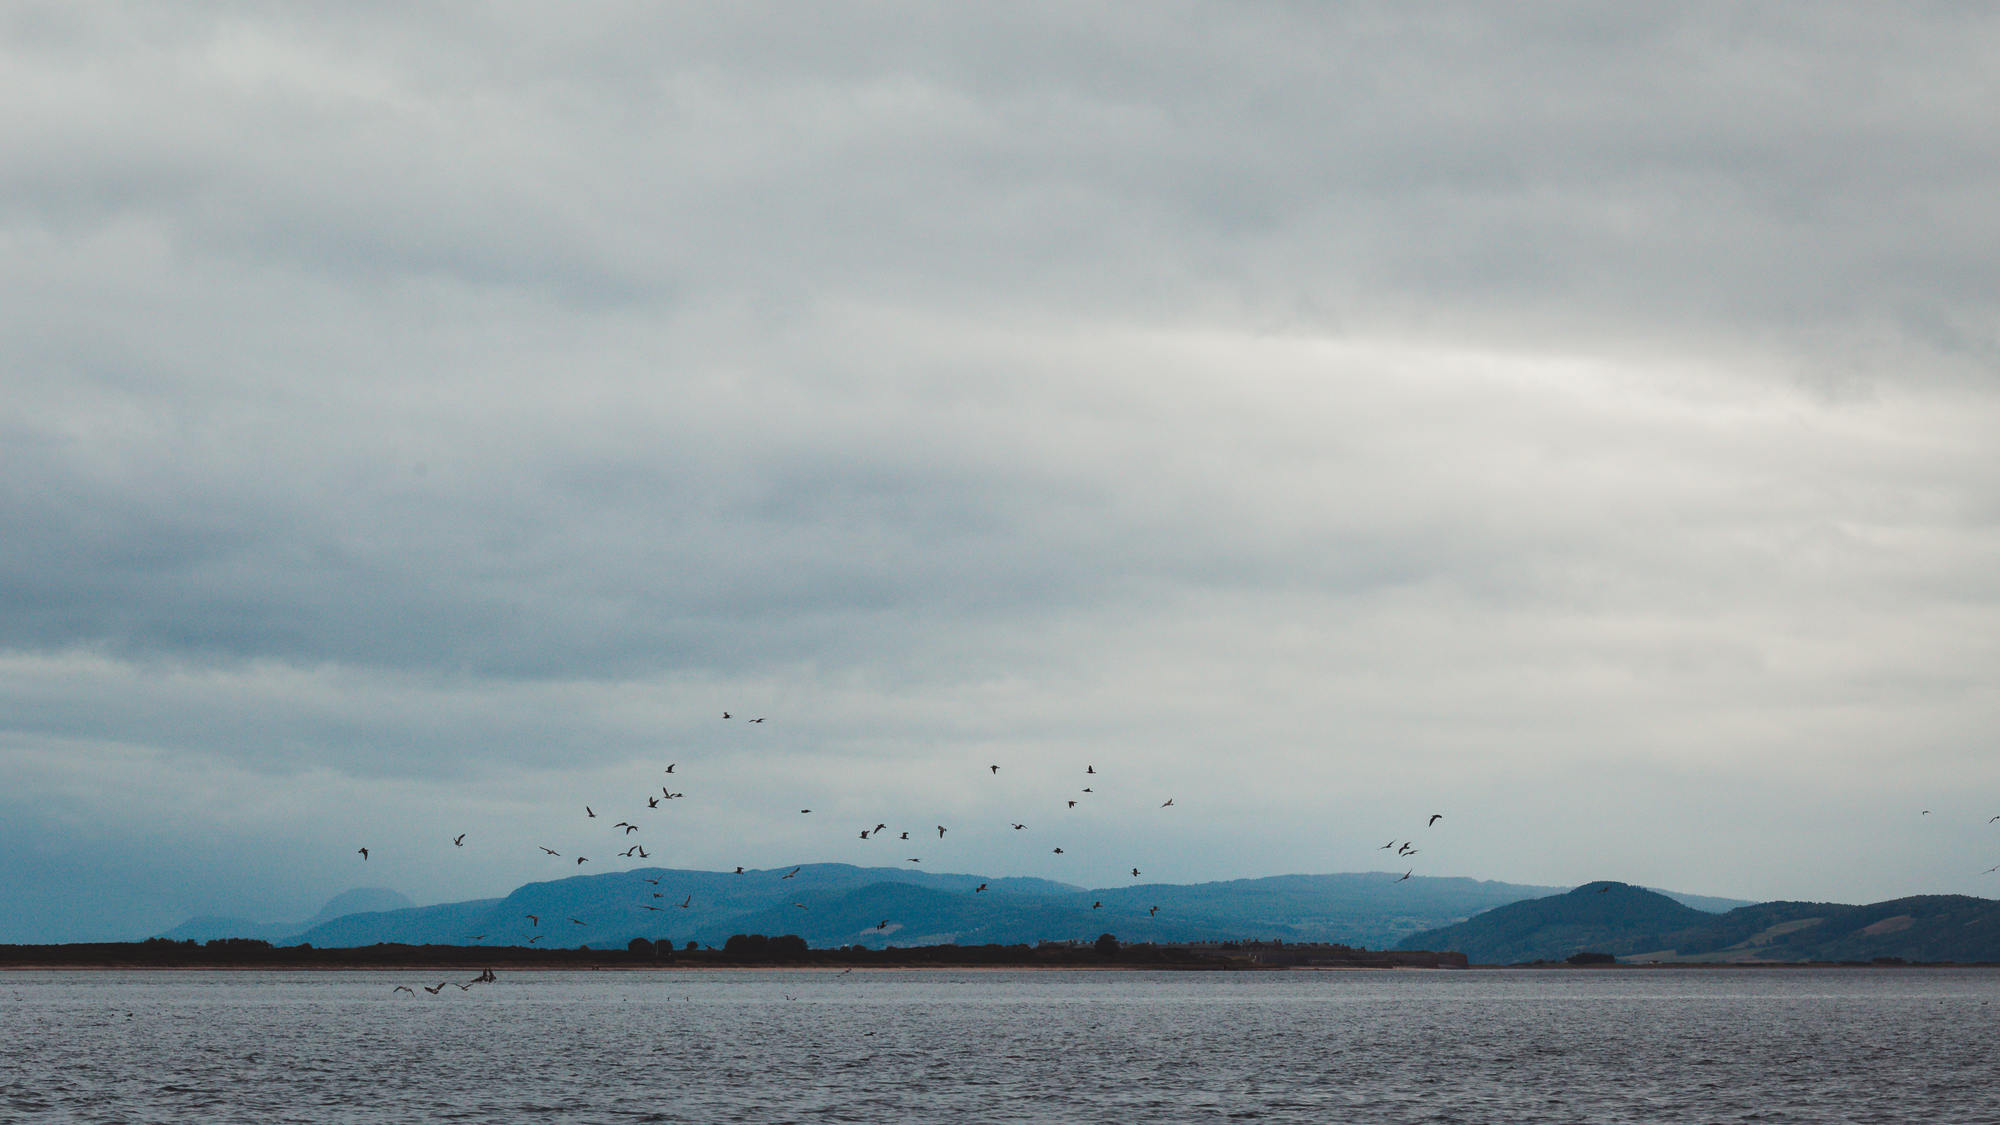 moray-firth-dolphins-phoenix-boats-05